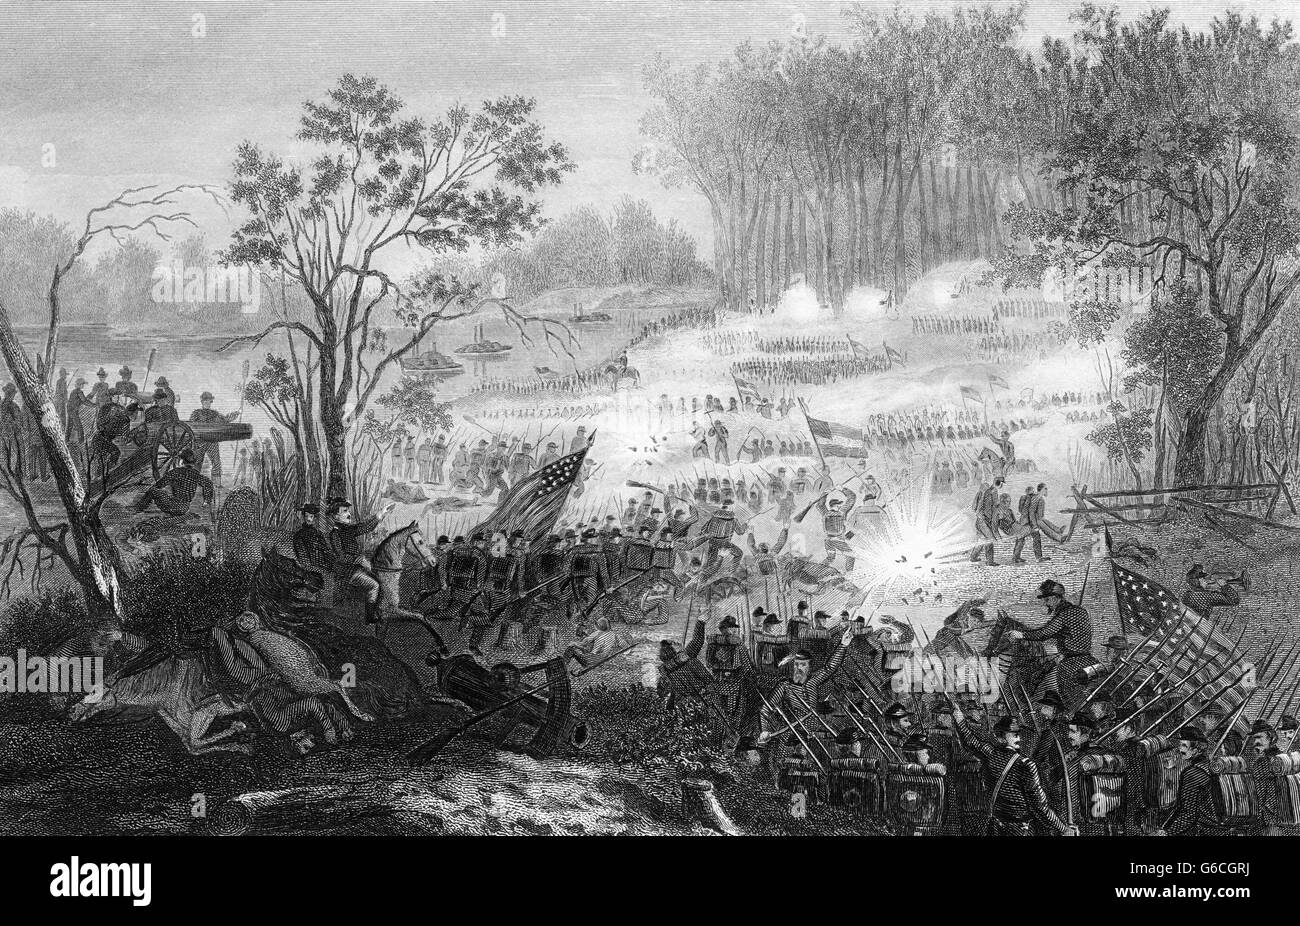 1860s APRIL 1862 AMERICAN CIVIL WAR THE BATTLE AT PITTSBURG LANDING SHILOH TENNESSEE USA - Stock Image